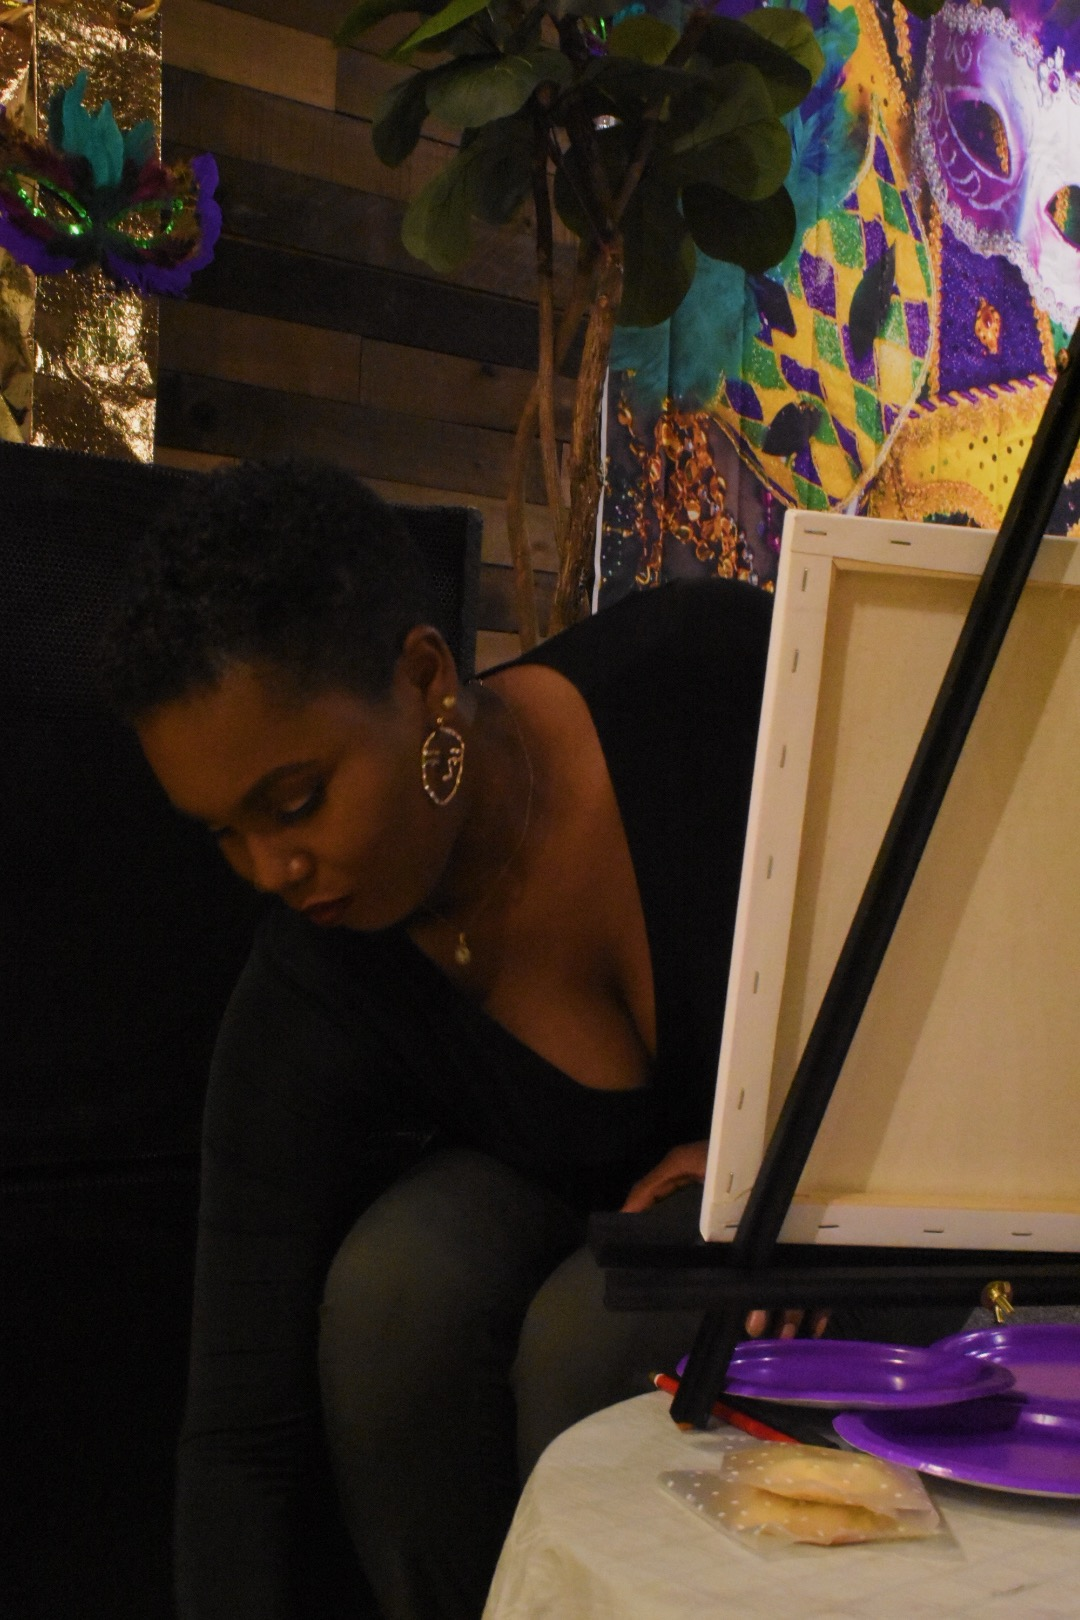 Alexis painting